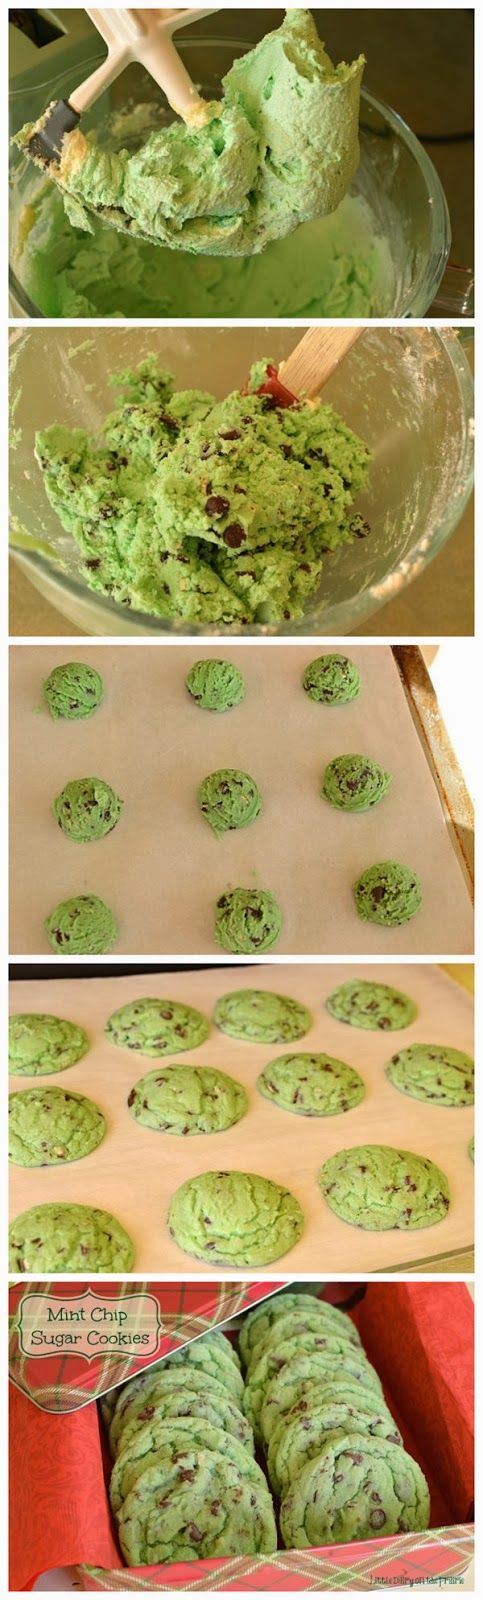 Mint Chip Sugar Cookies. I need to send these to her for Christmas!